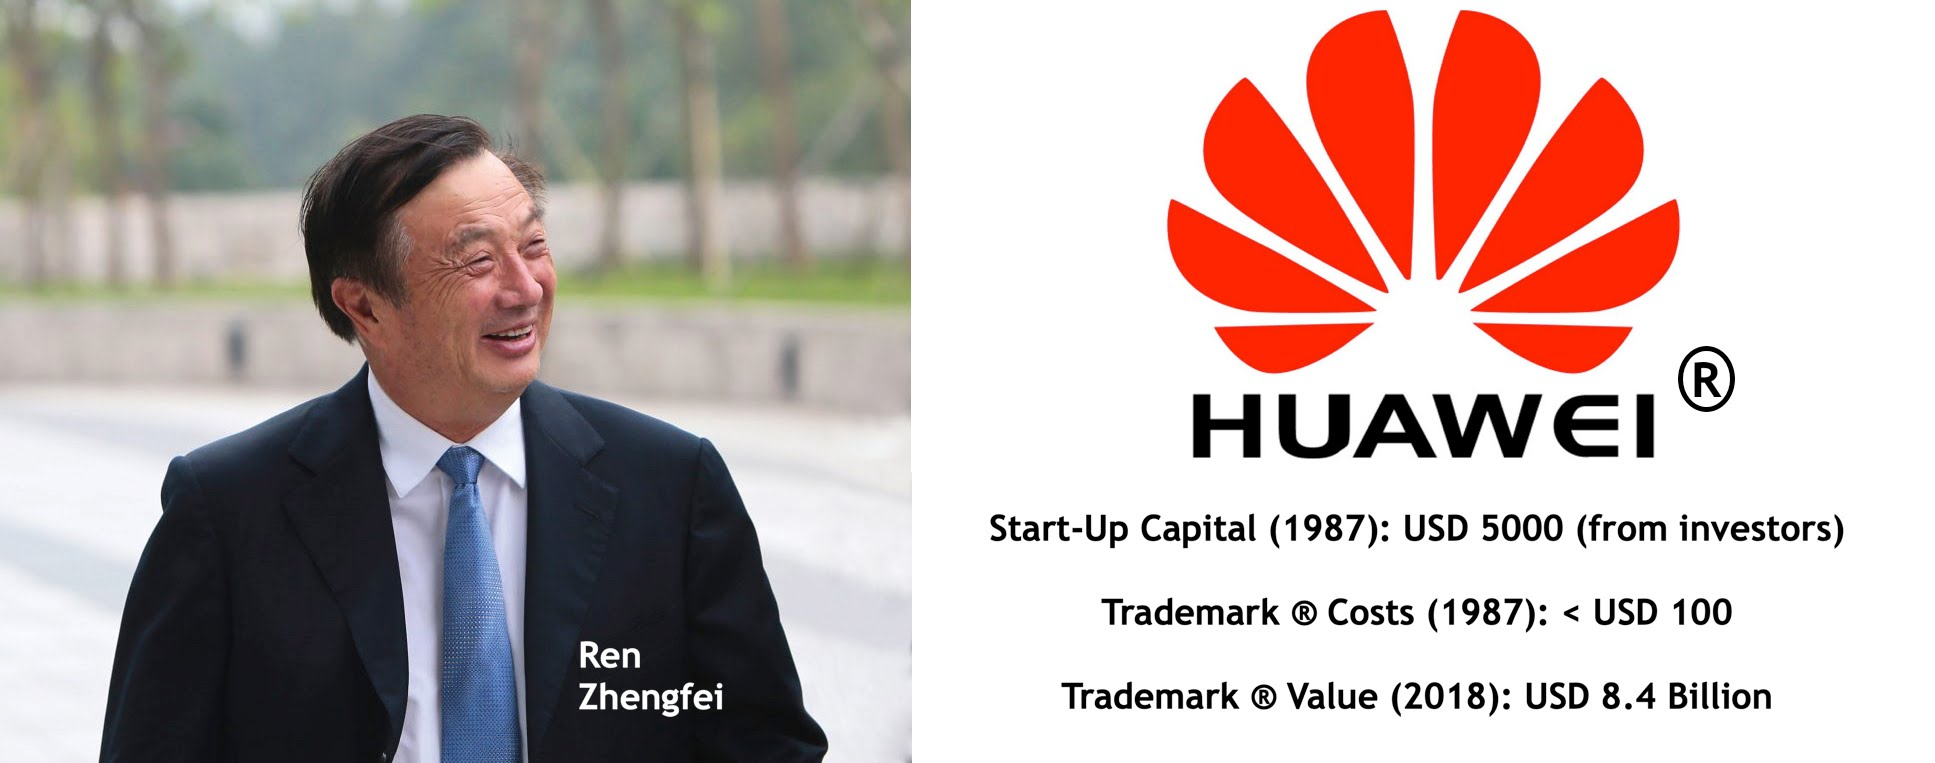 Ren Zhengfei Huawei Trademark Value